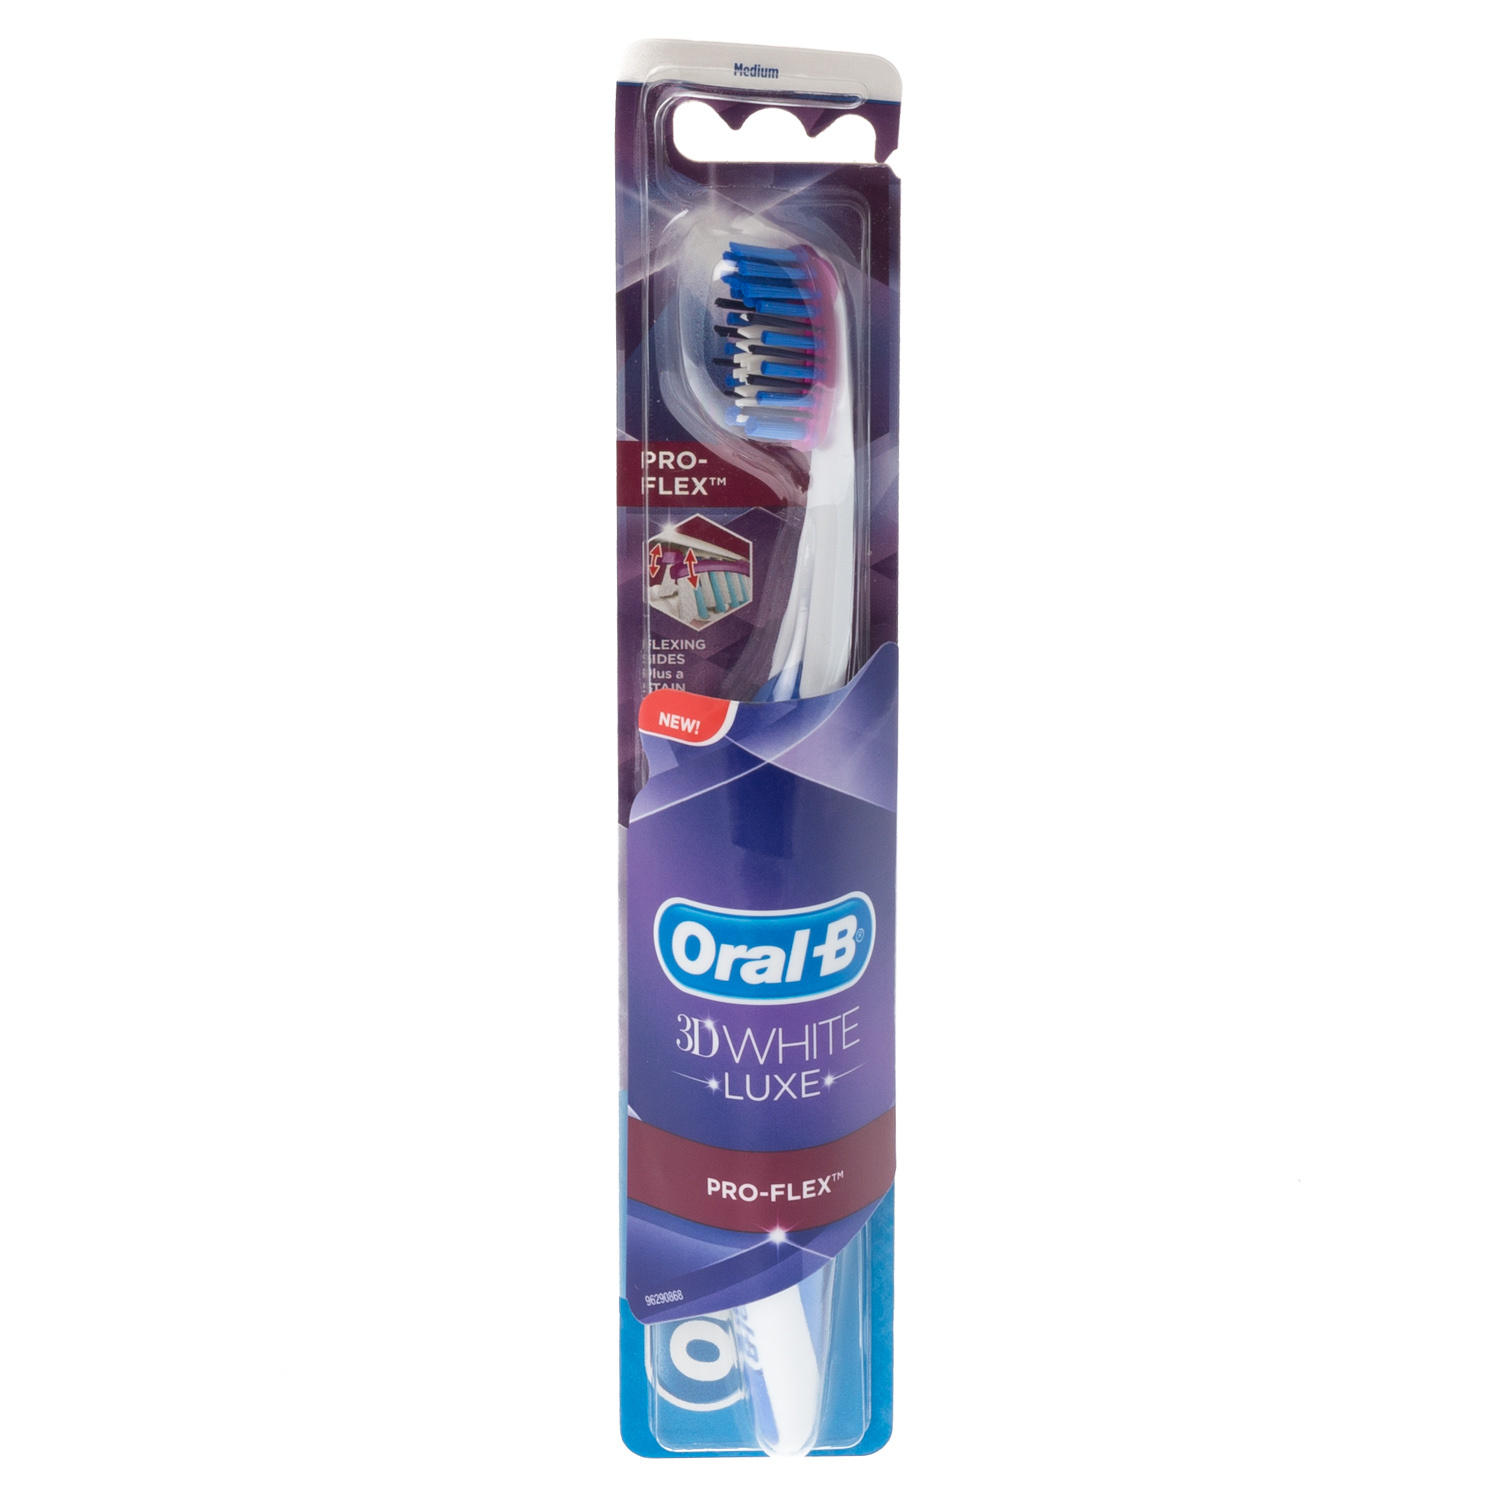 Oral-B 3D White Toothbrush